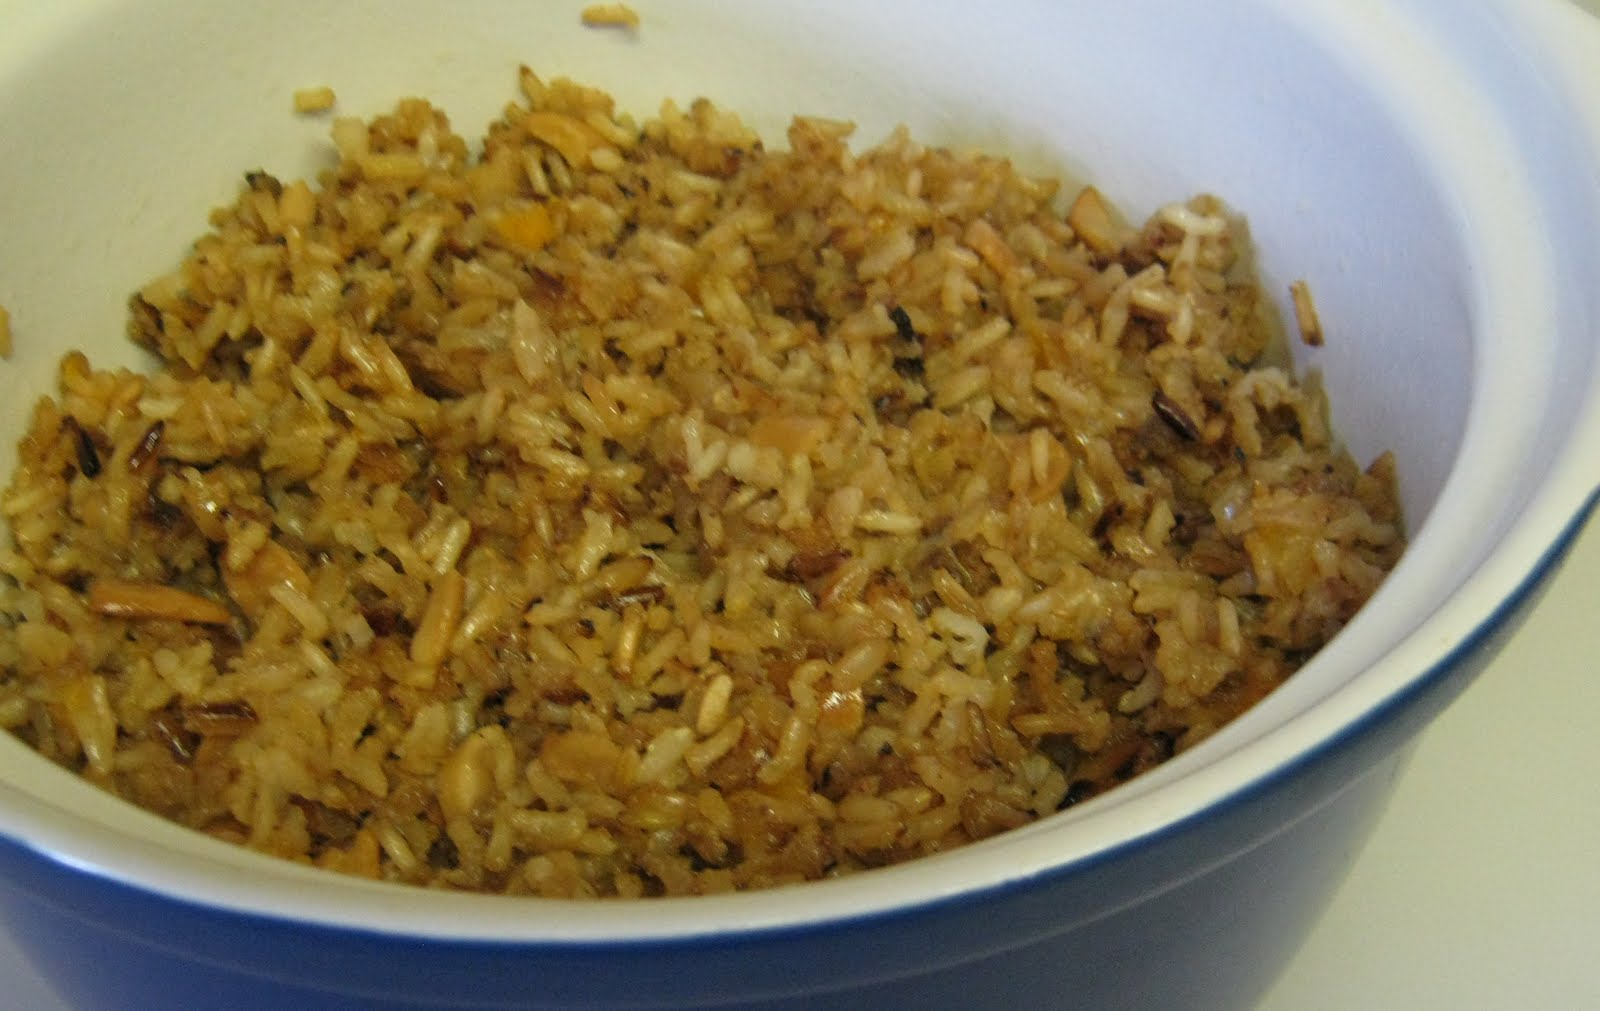 My Sweet and Savory: Herbed Cashew Rice with Dried Apricots BSI